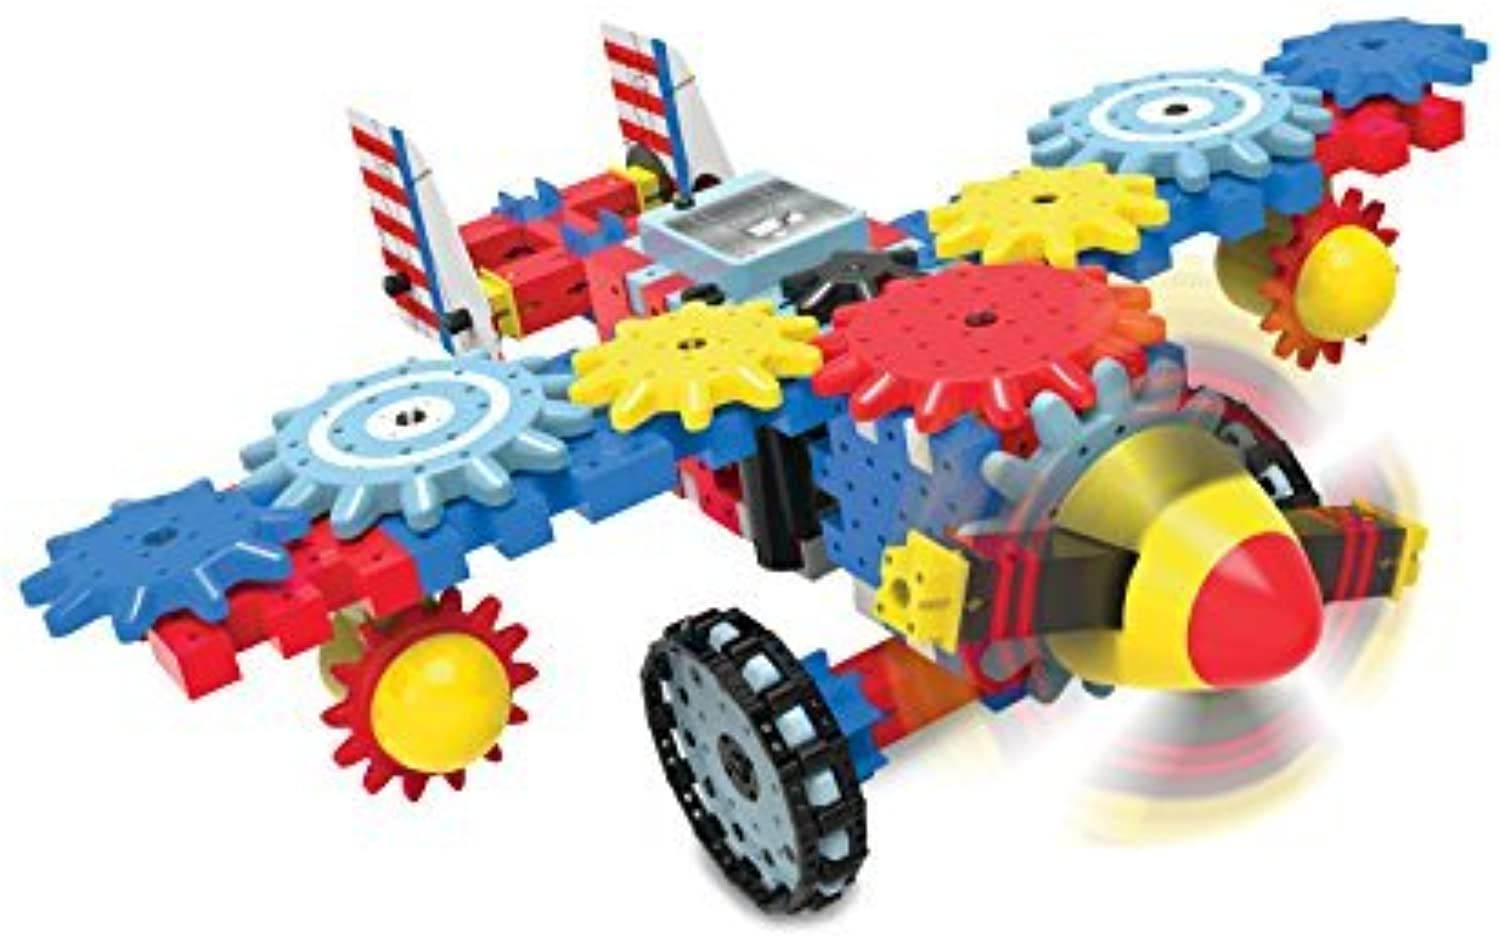 The Learning Journey Techno Gears, Aero Trax Plane by The Learning Journey